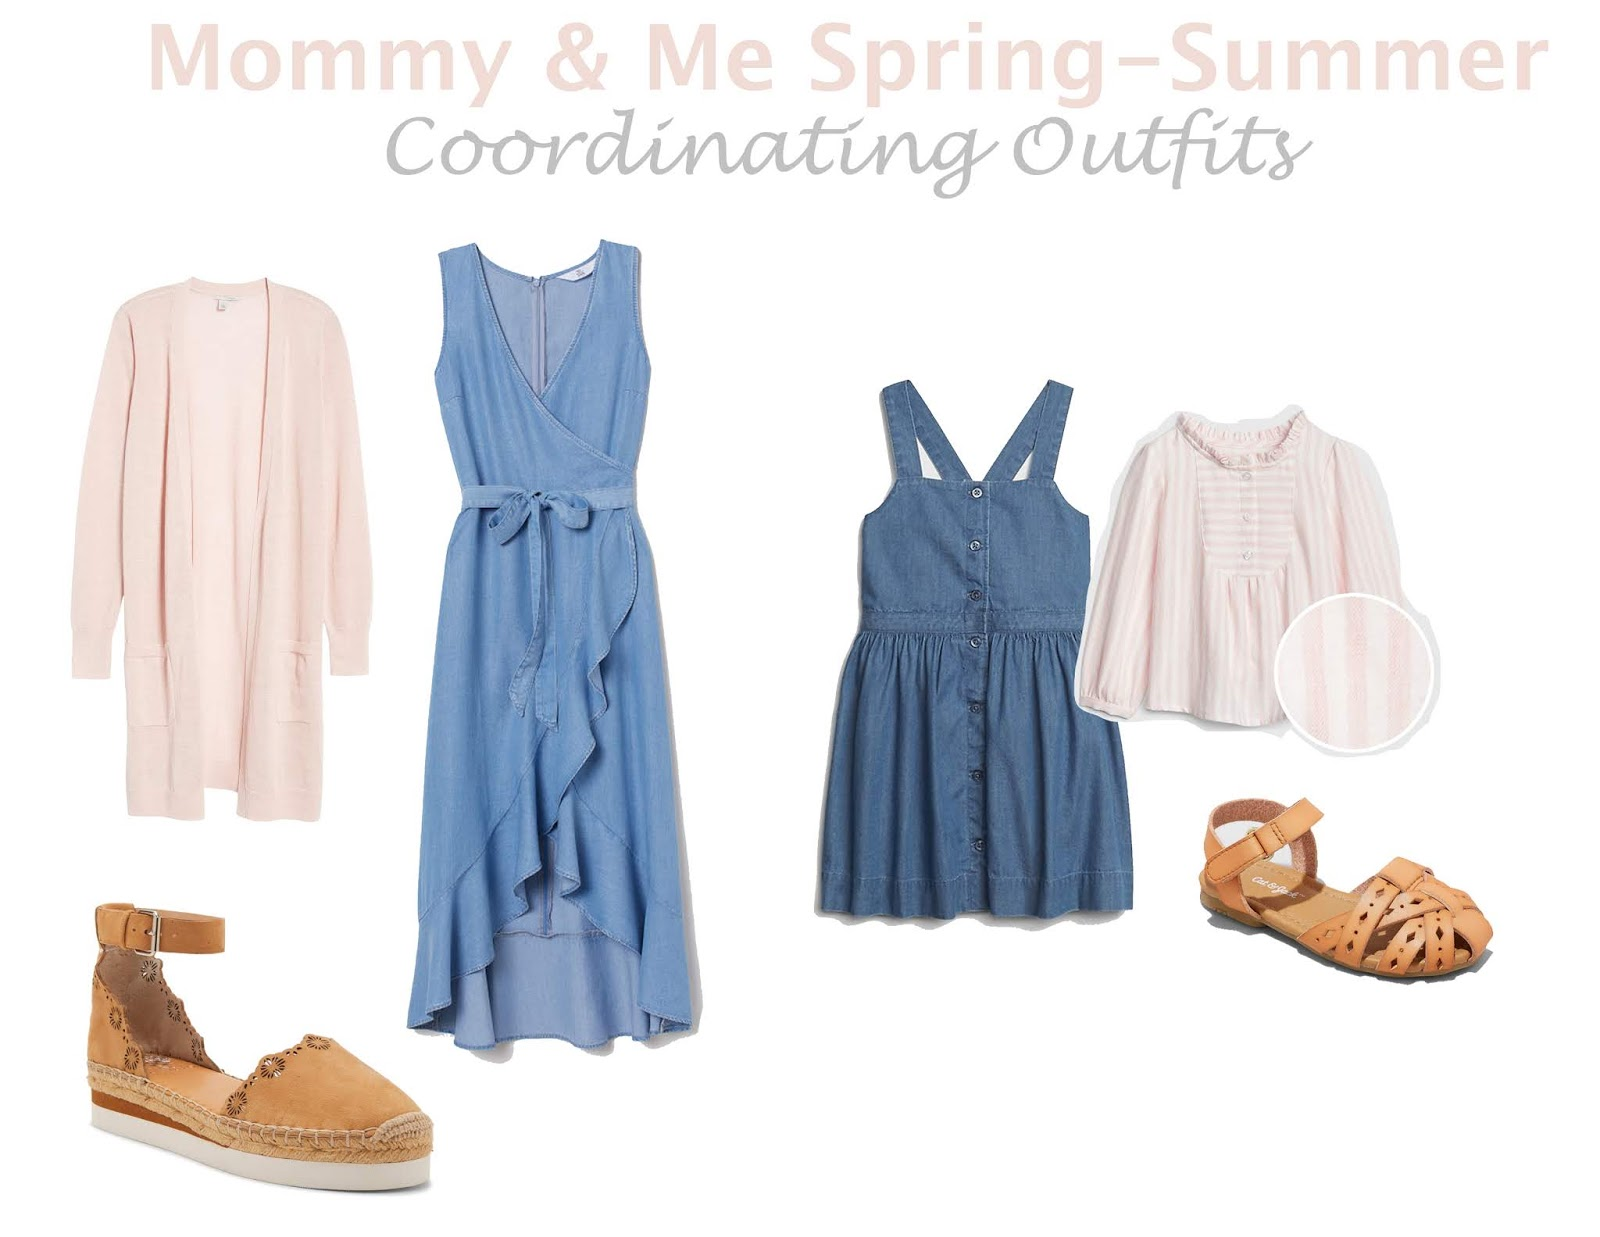 Mommy and me outfit dresses